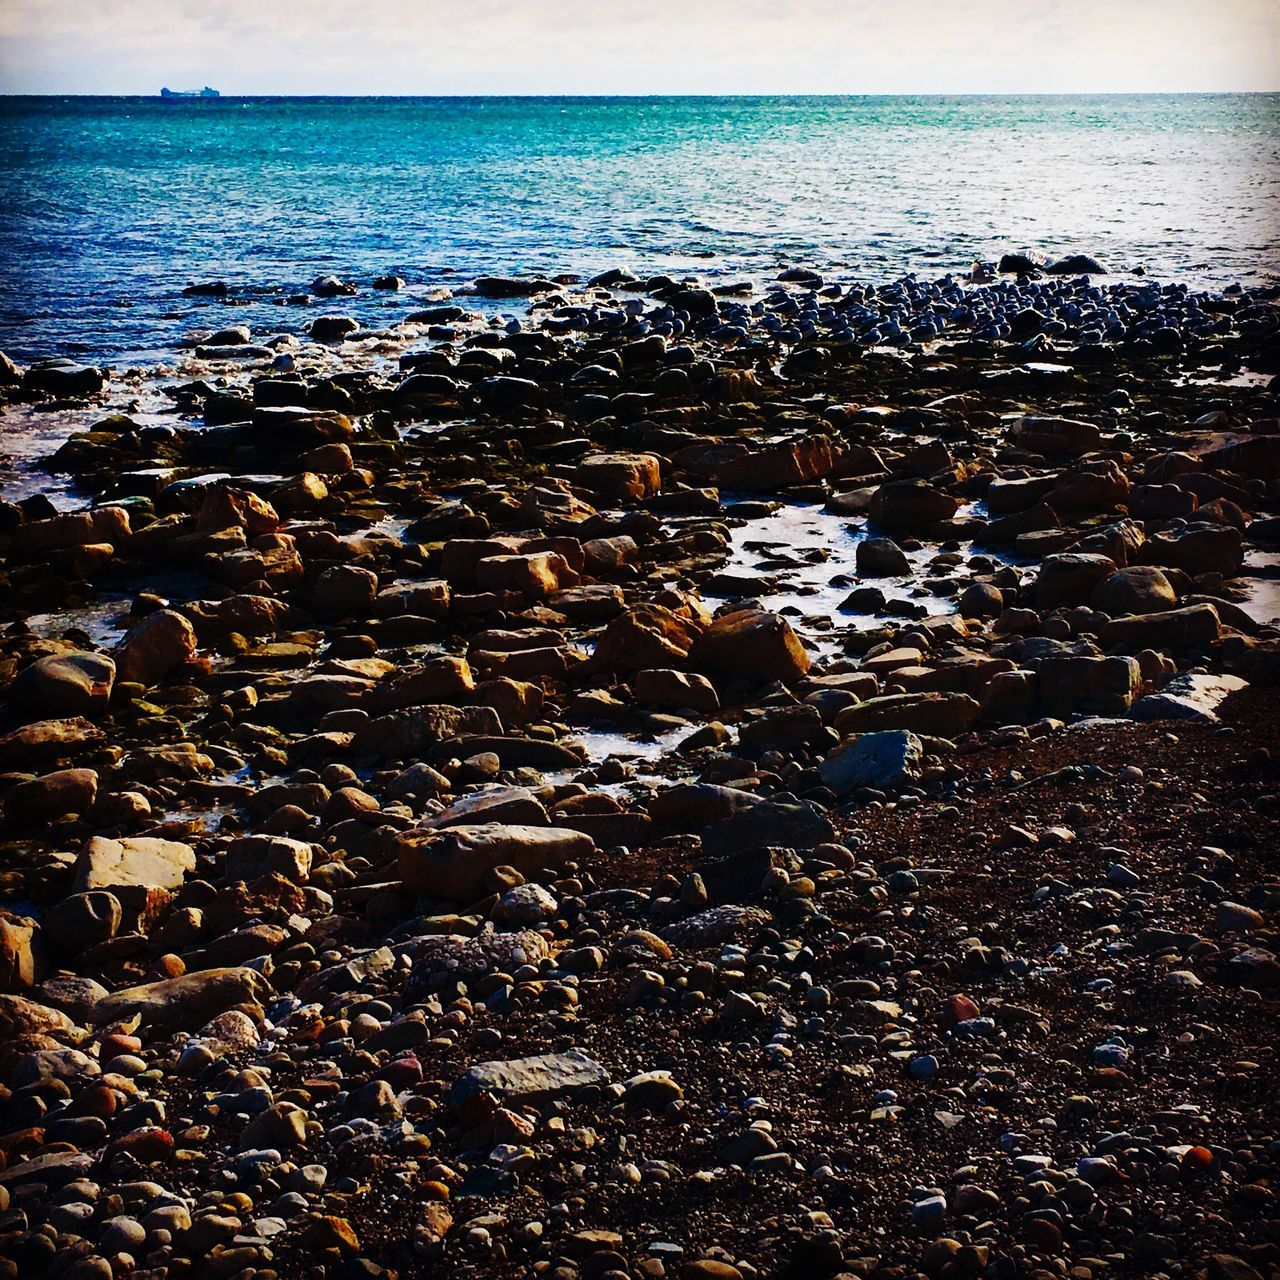 sea, water, pebble, horizon over water, nature, pebble beach, shore, beach, beauty in nature, tranquil scene, tranquility, no people, scenics, rock - object, outdoors, day, sky